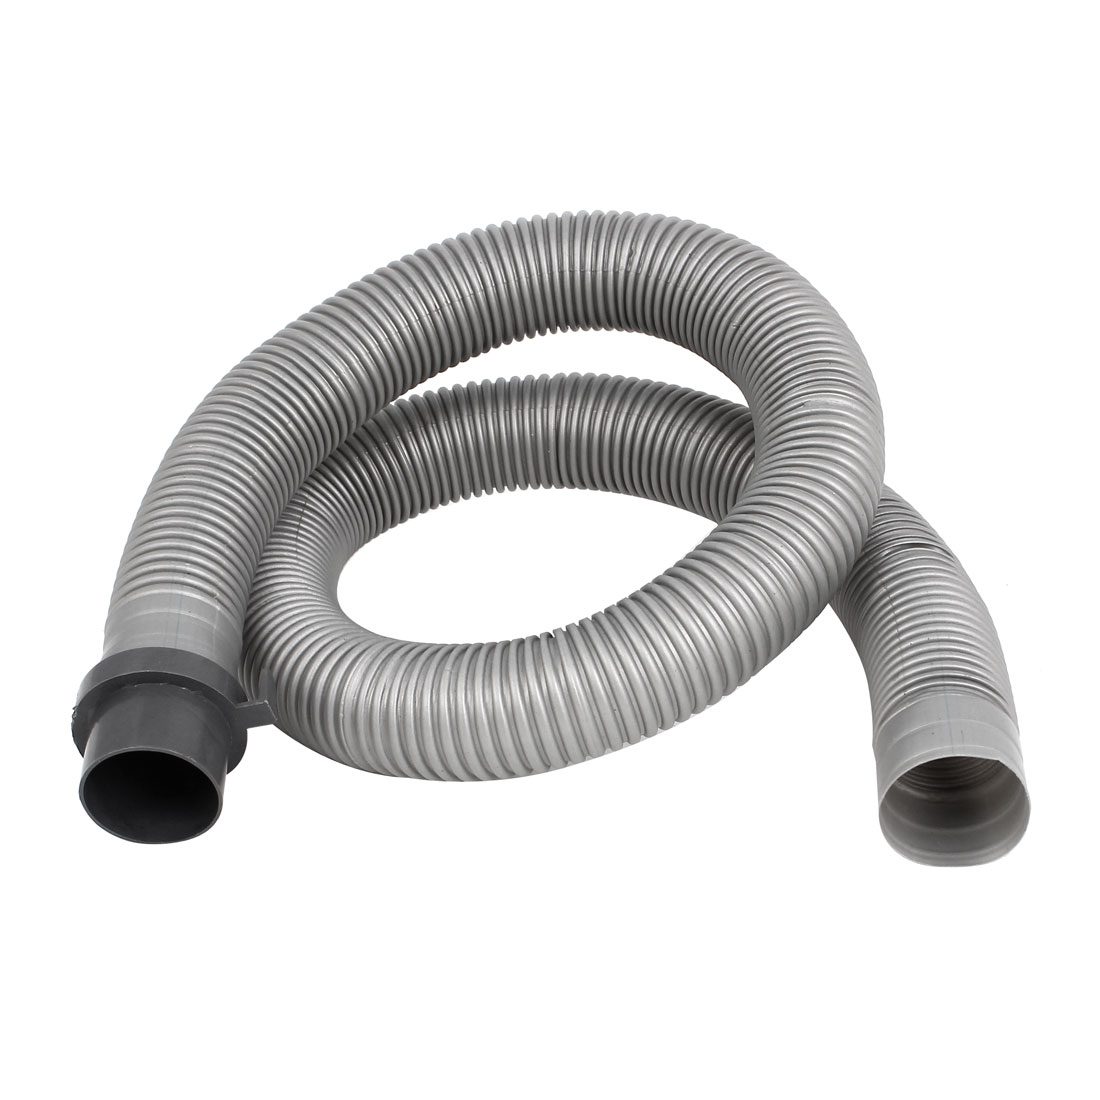 Washer Washing Machine Waste Water Drain Hose Pipe 1m 3.3Ft Gray